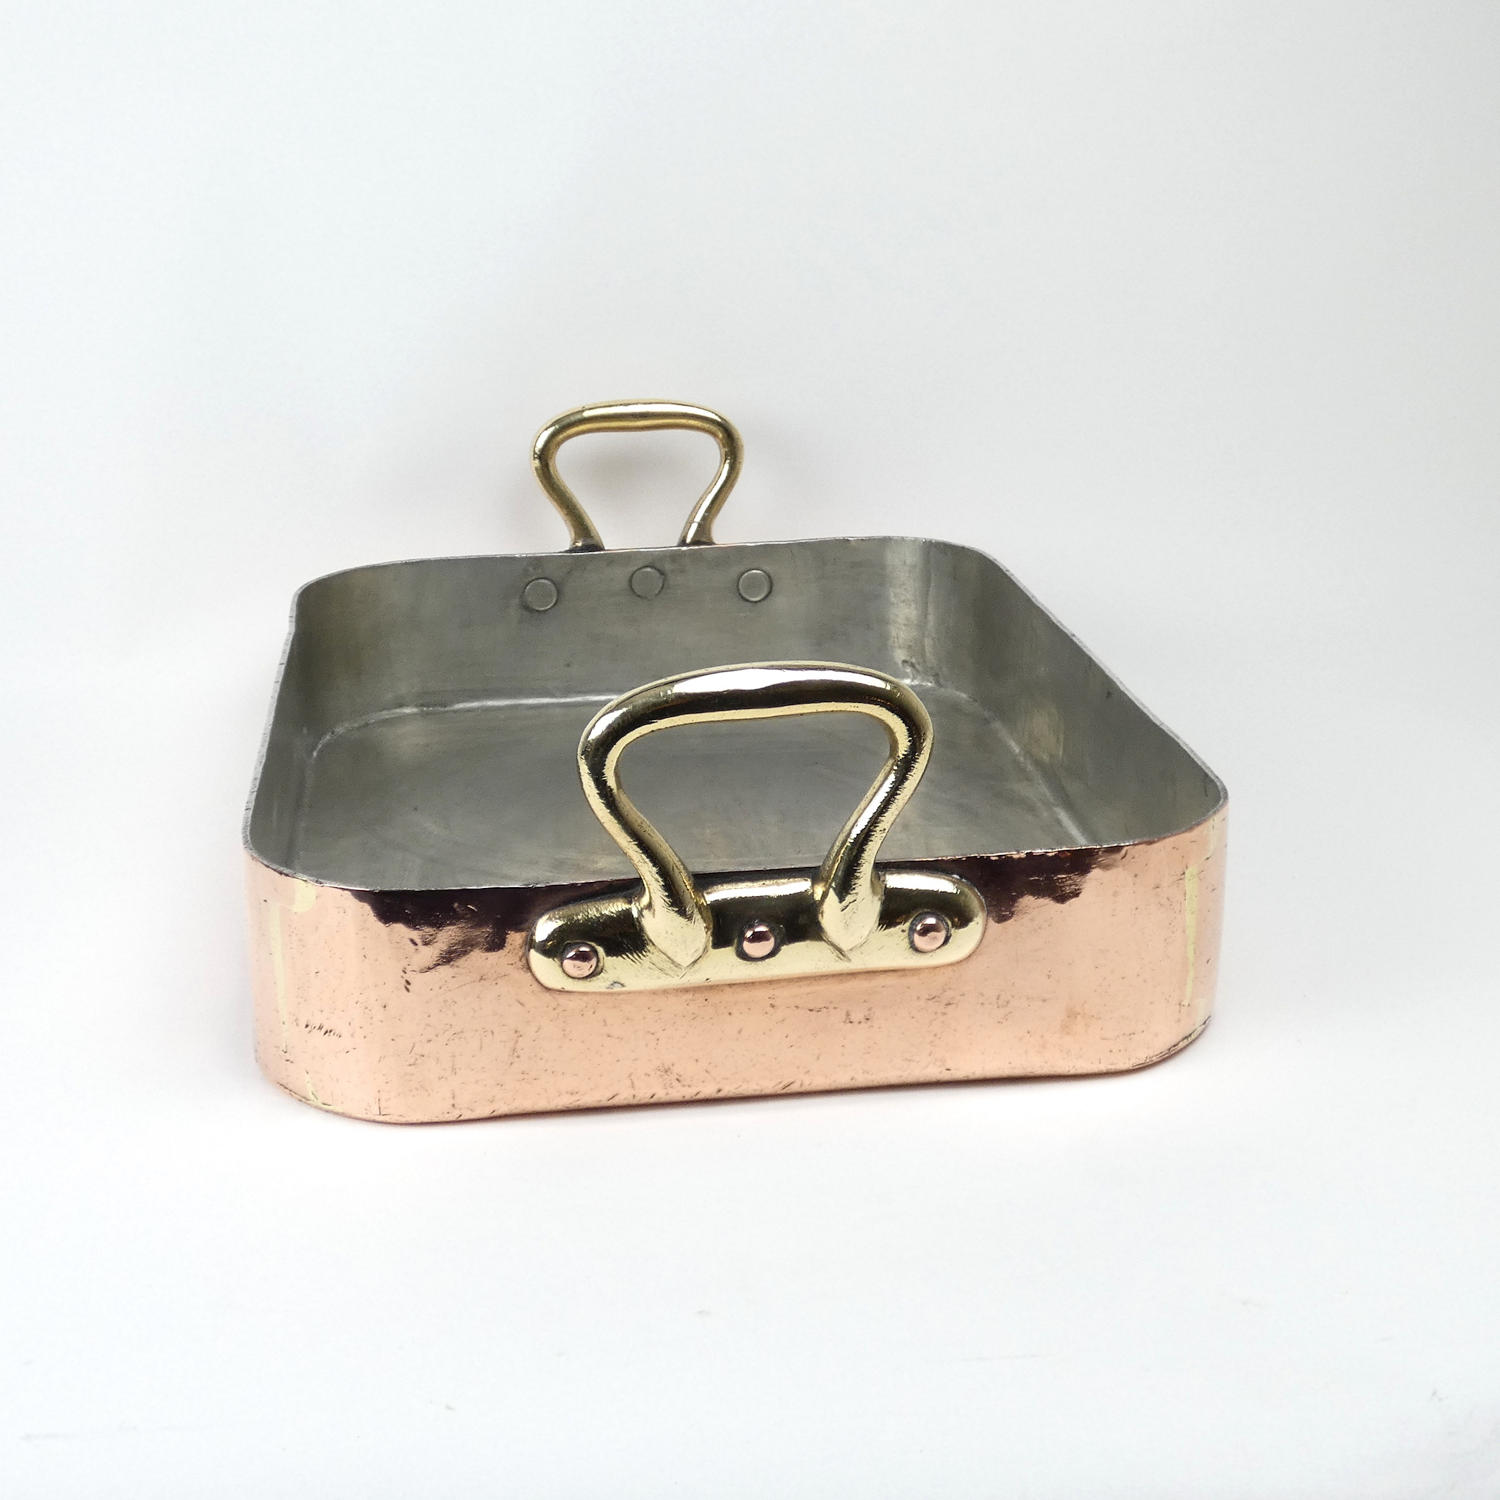 Heavy Copper Roasting Pan.